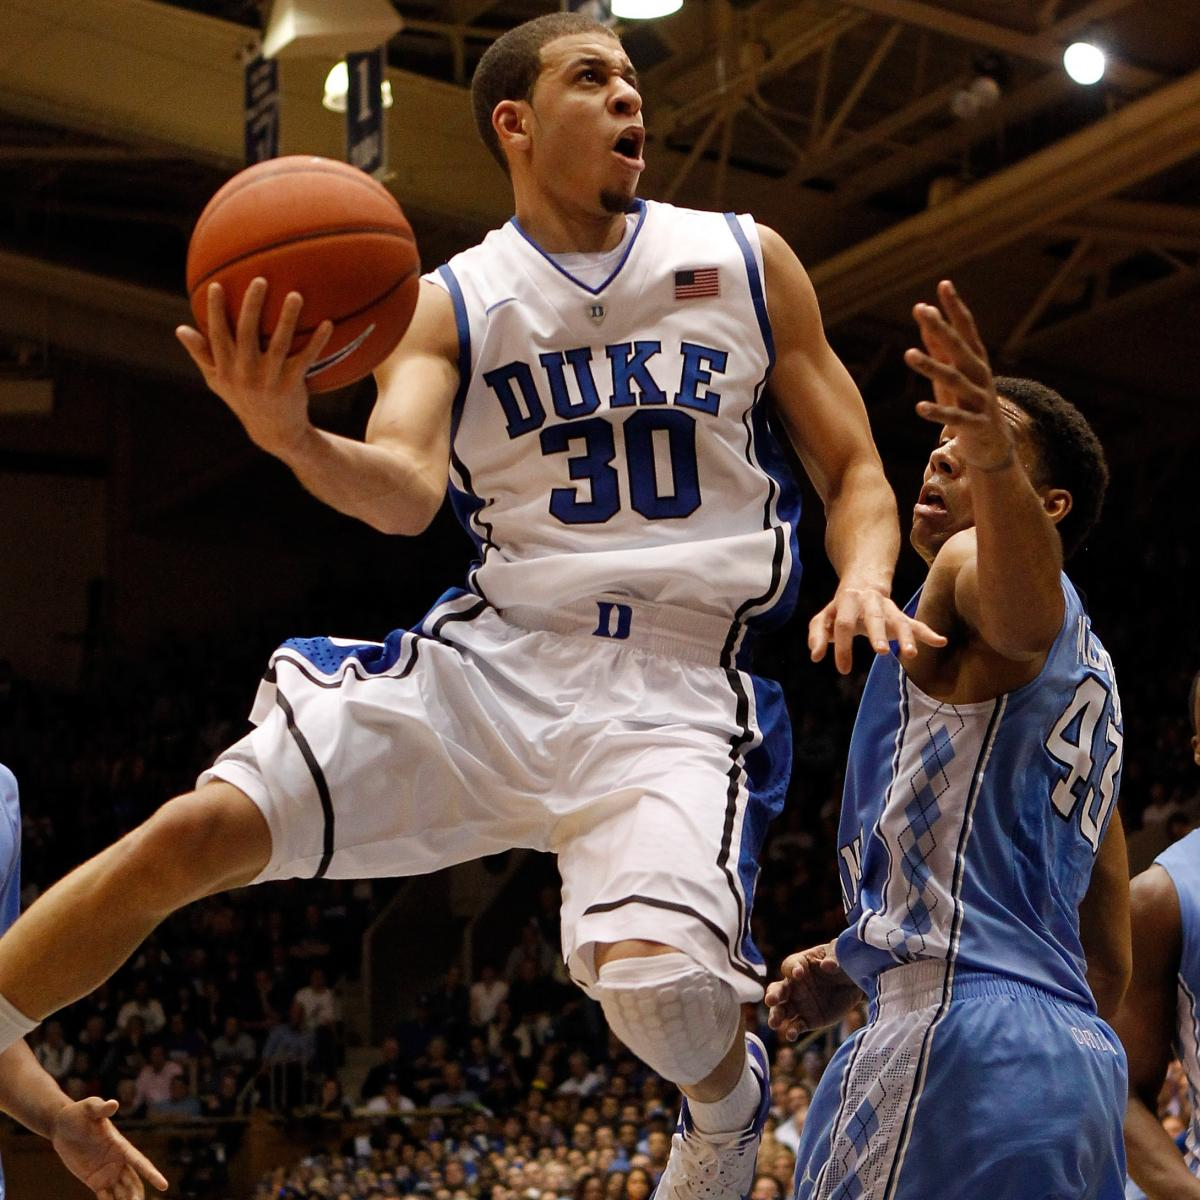 The Duke Blue Devils mens basketball team represents Duke University in NCAA Division I college basketball and competes in the Atlantic Coast Conference ACC